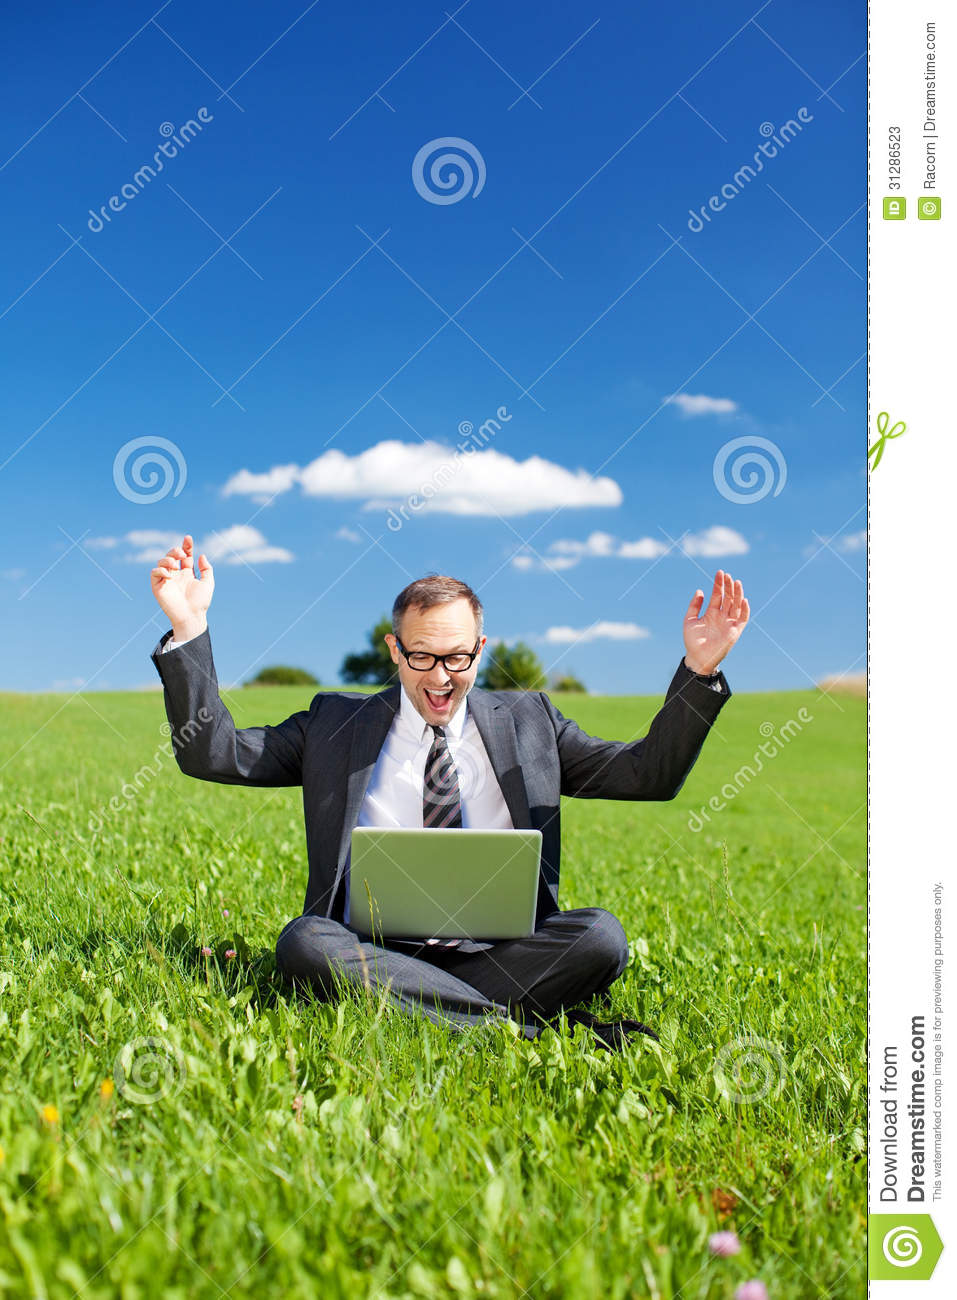 Jubilant Manager In A Green Grassy Field Stock Photos ...